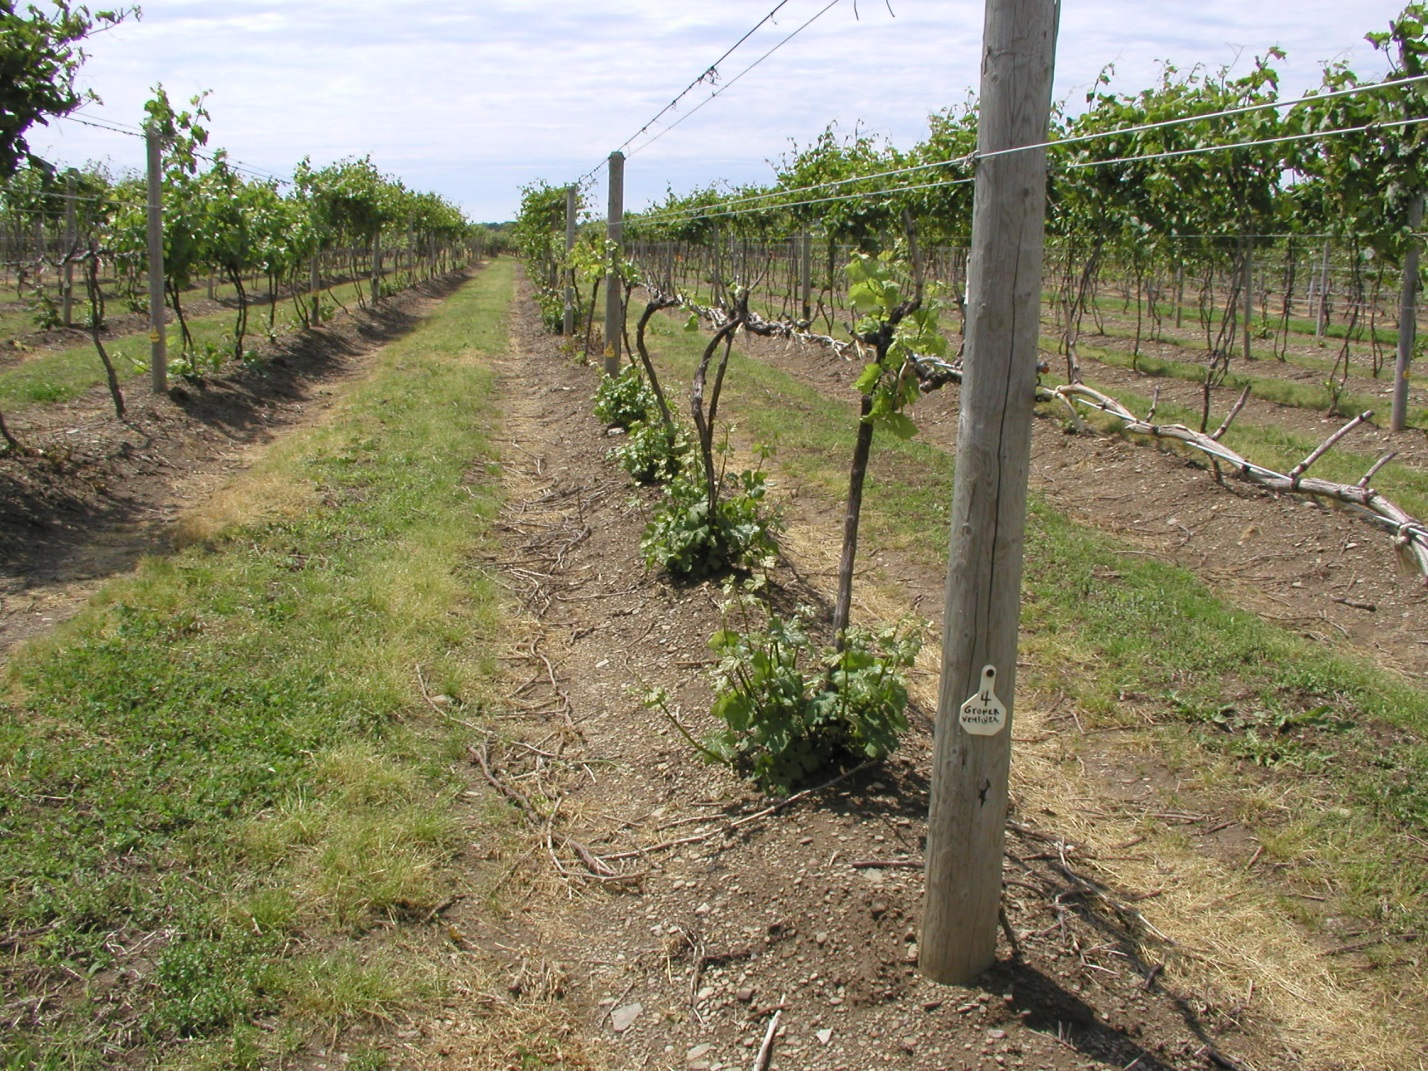 Crown Gall – A Growing Concern in Vineyards   Penn State